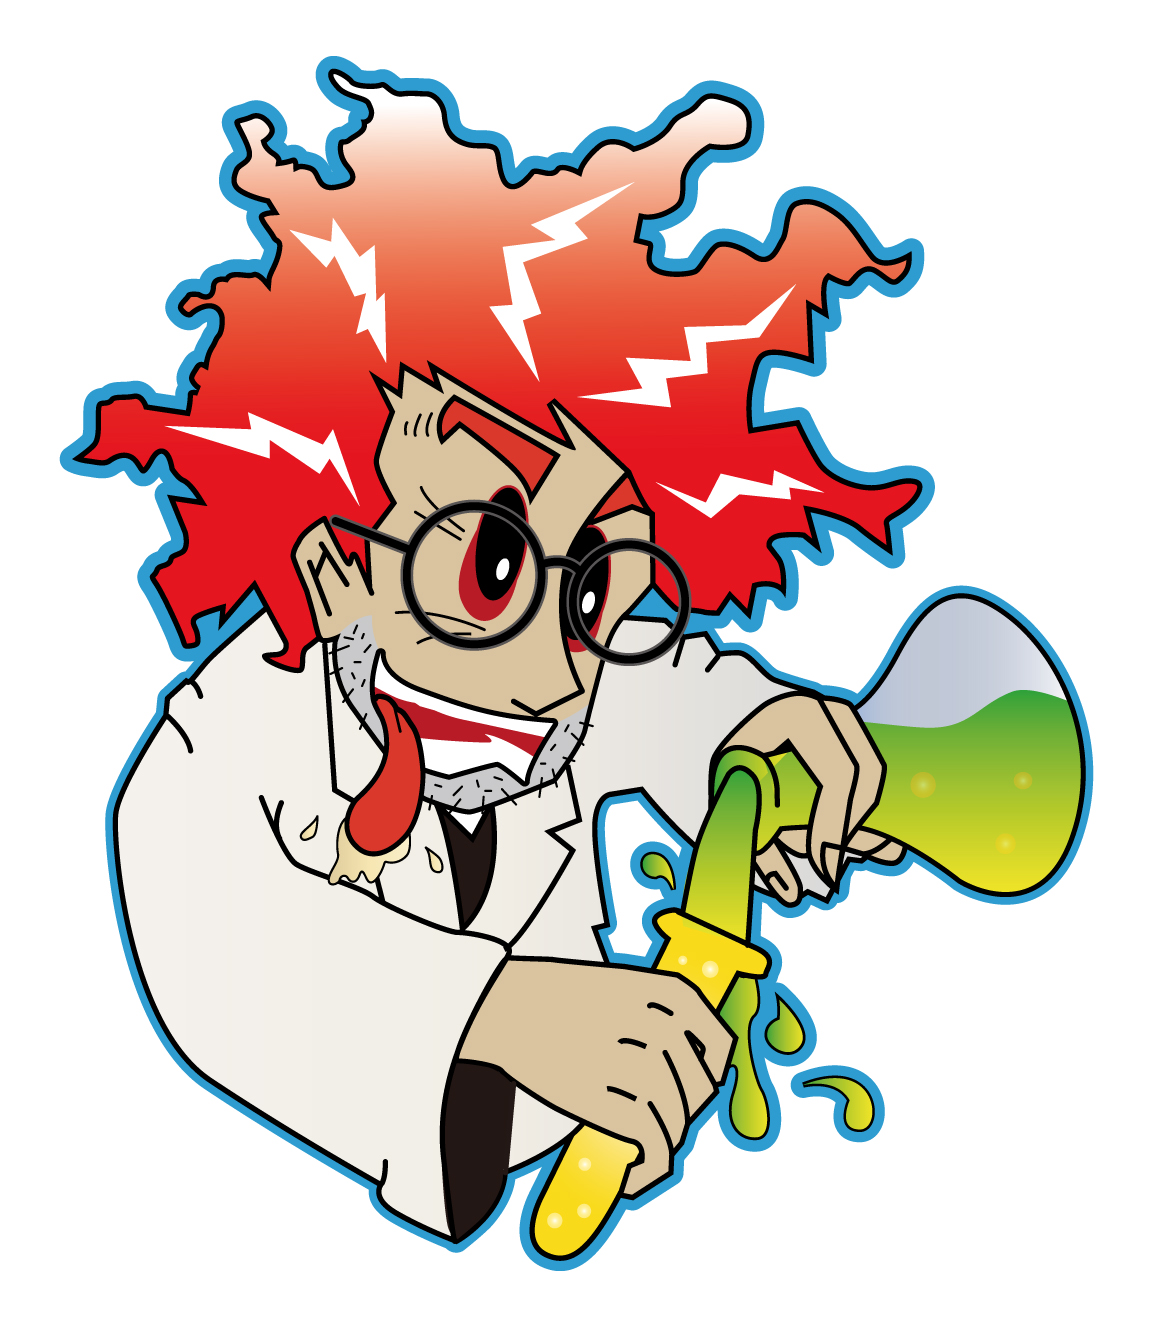 scientist mad clipart cartoon clip science lab crazy cliparts scientists illustrations coloring pages library attribution forget link don vector favorite